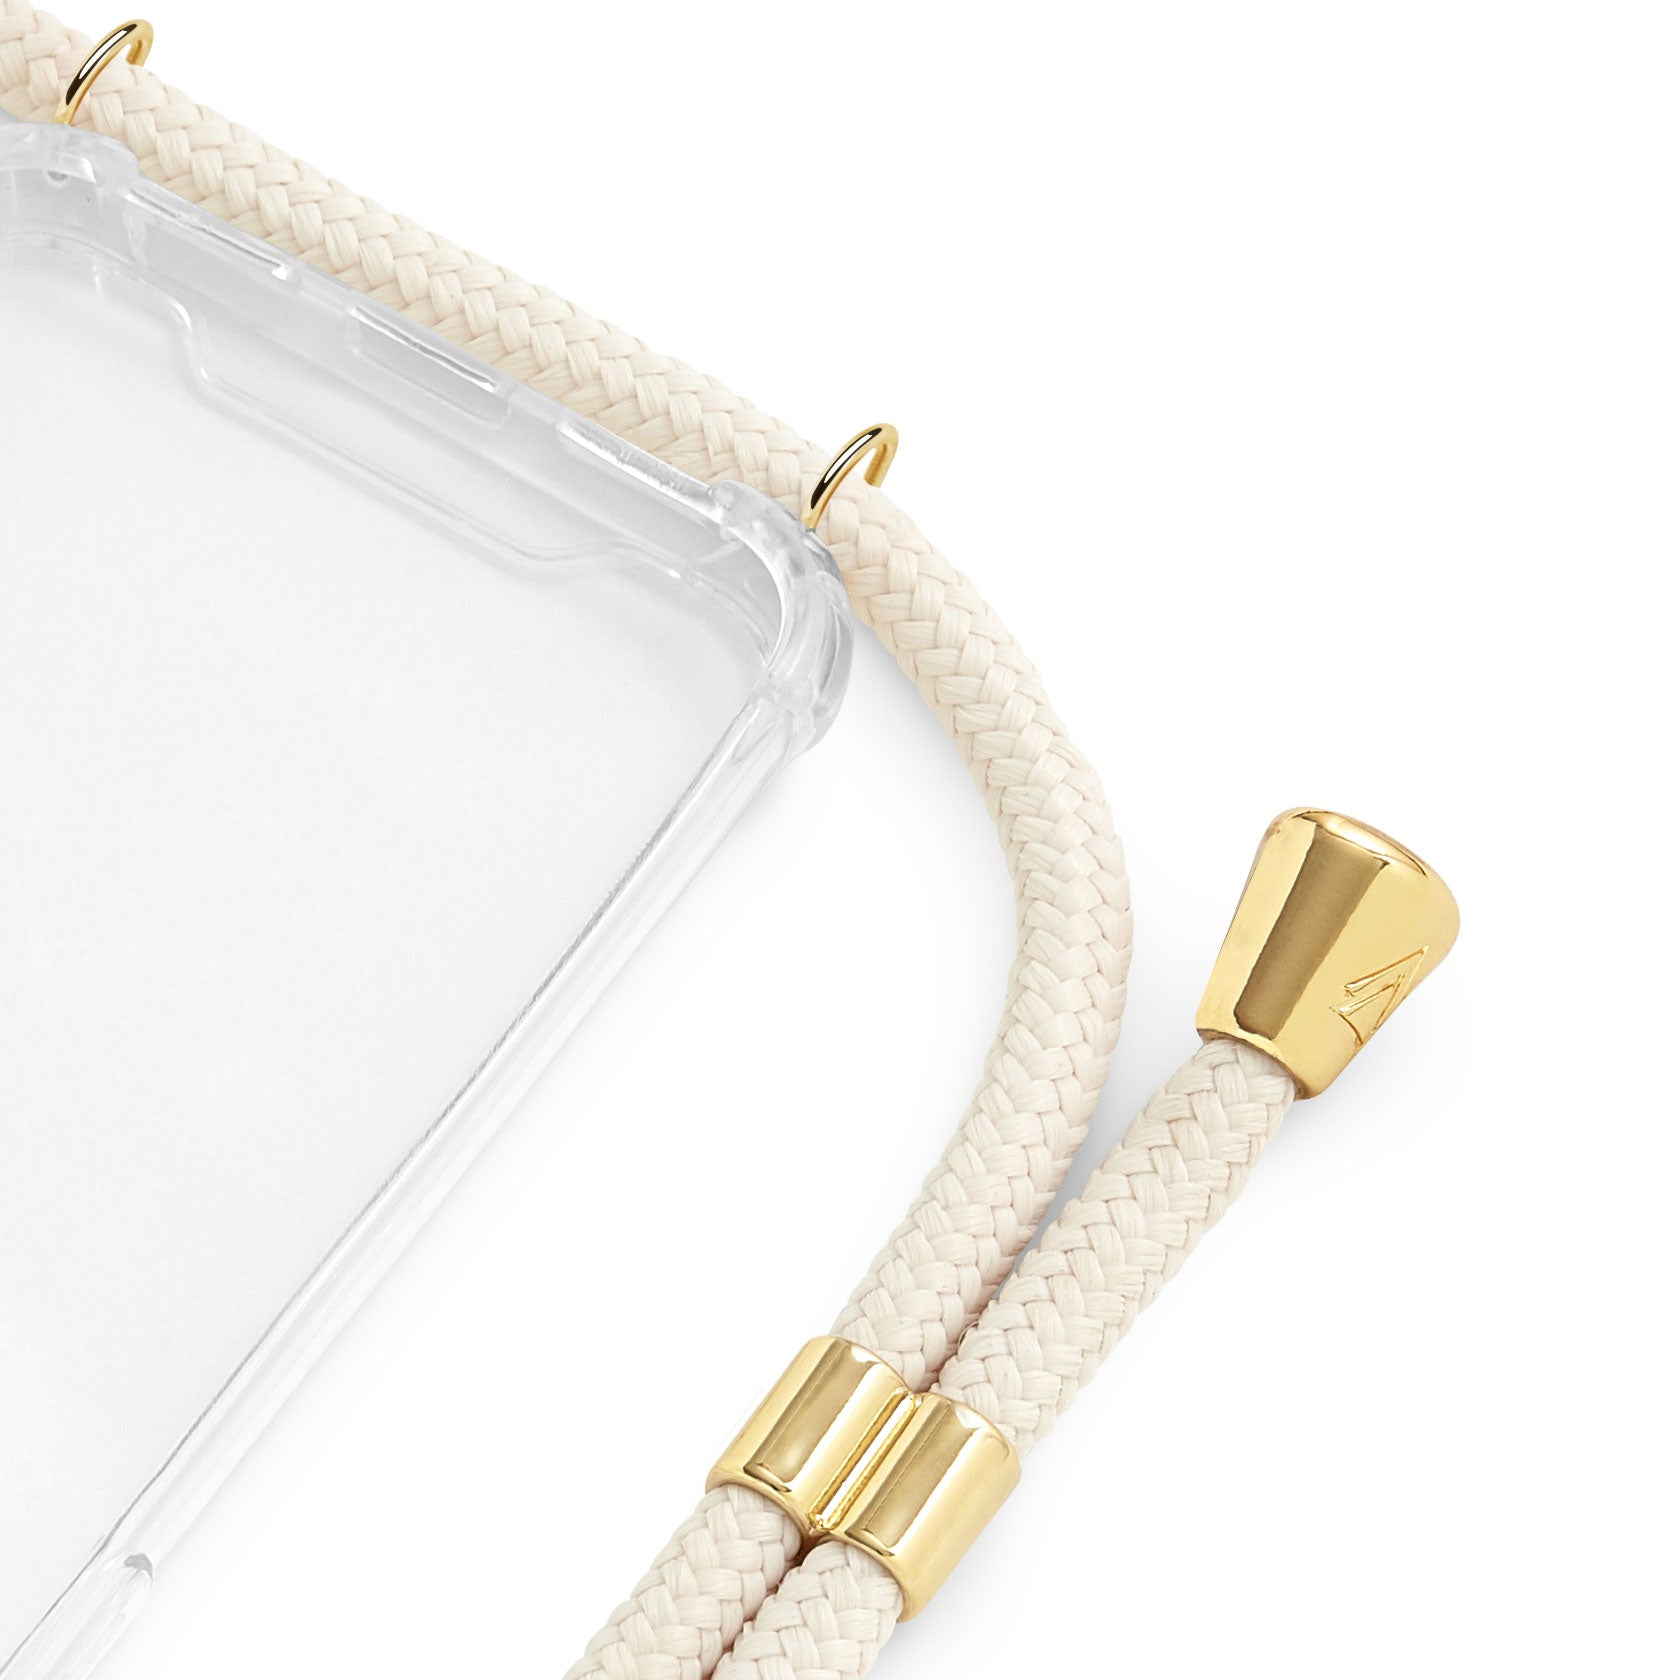 Phone Case Necklace | N°45 CREME WHITE | Cicerly